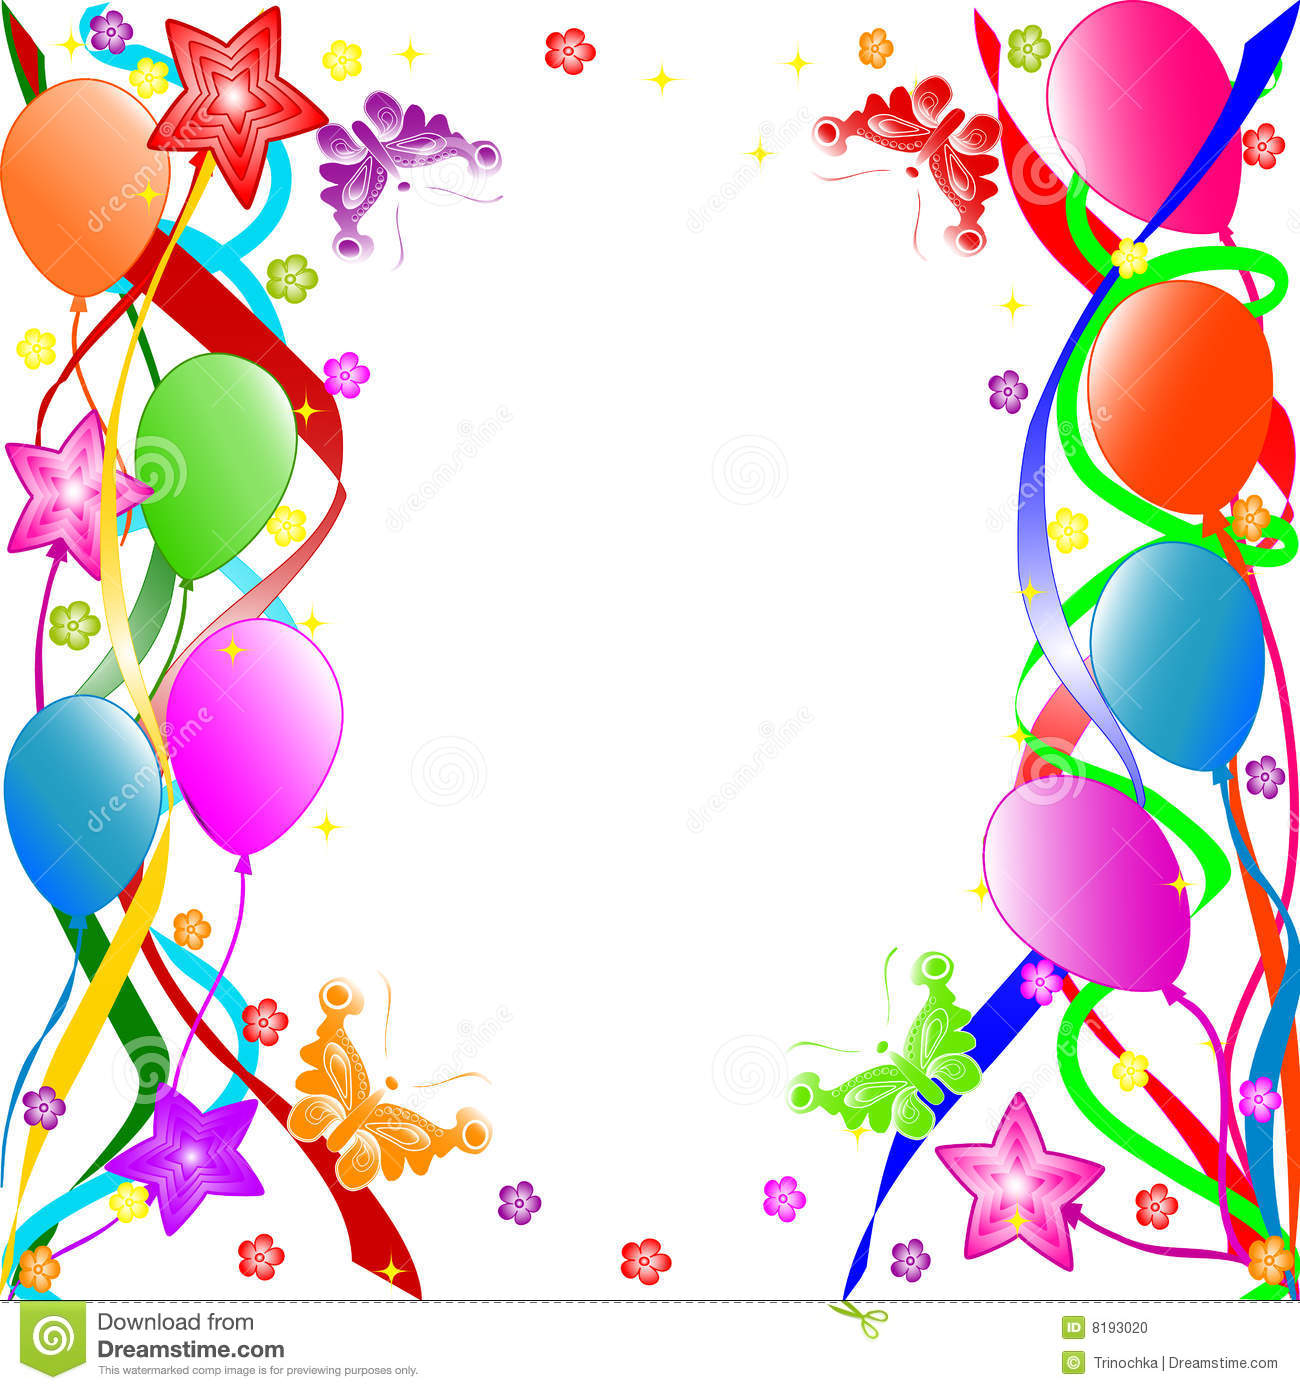 Birthday Background Images Sf Wallpaper